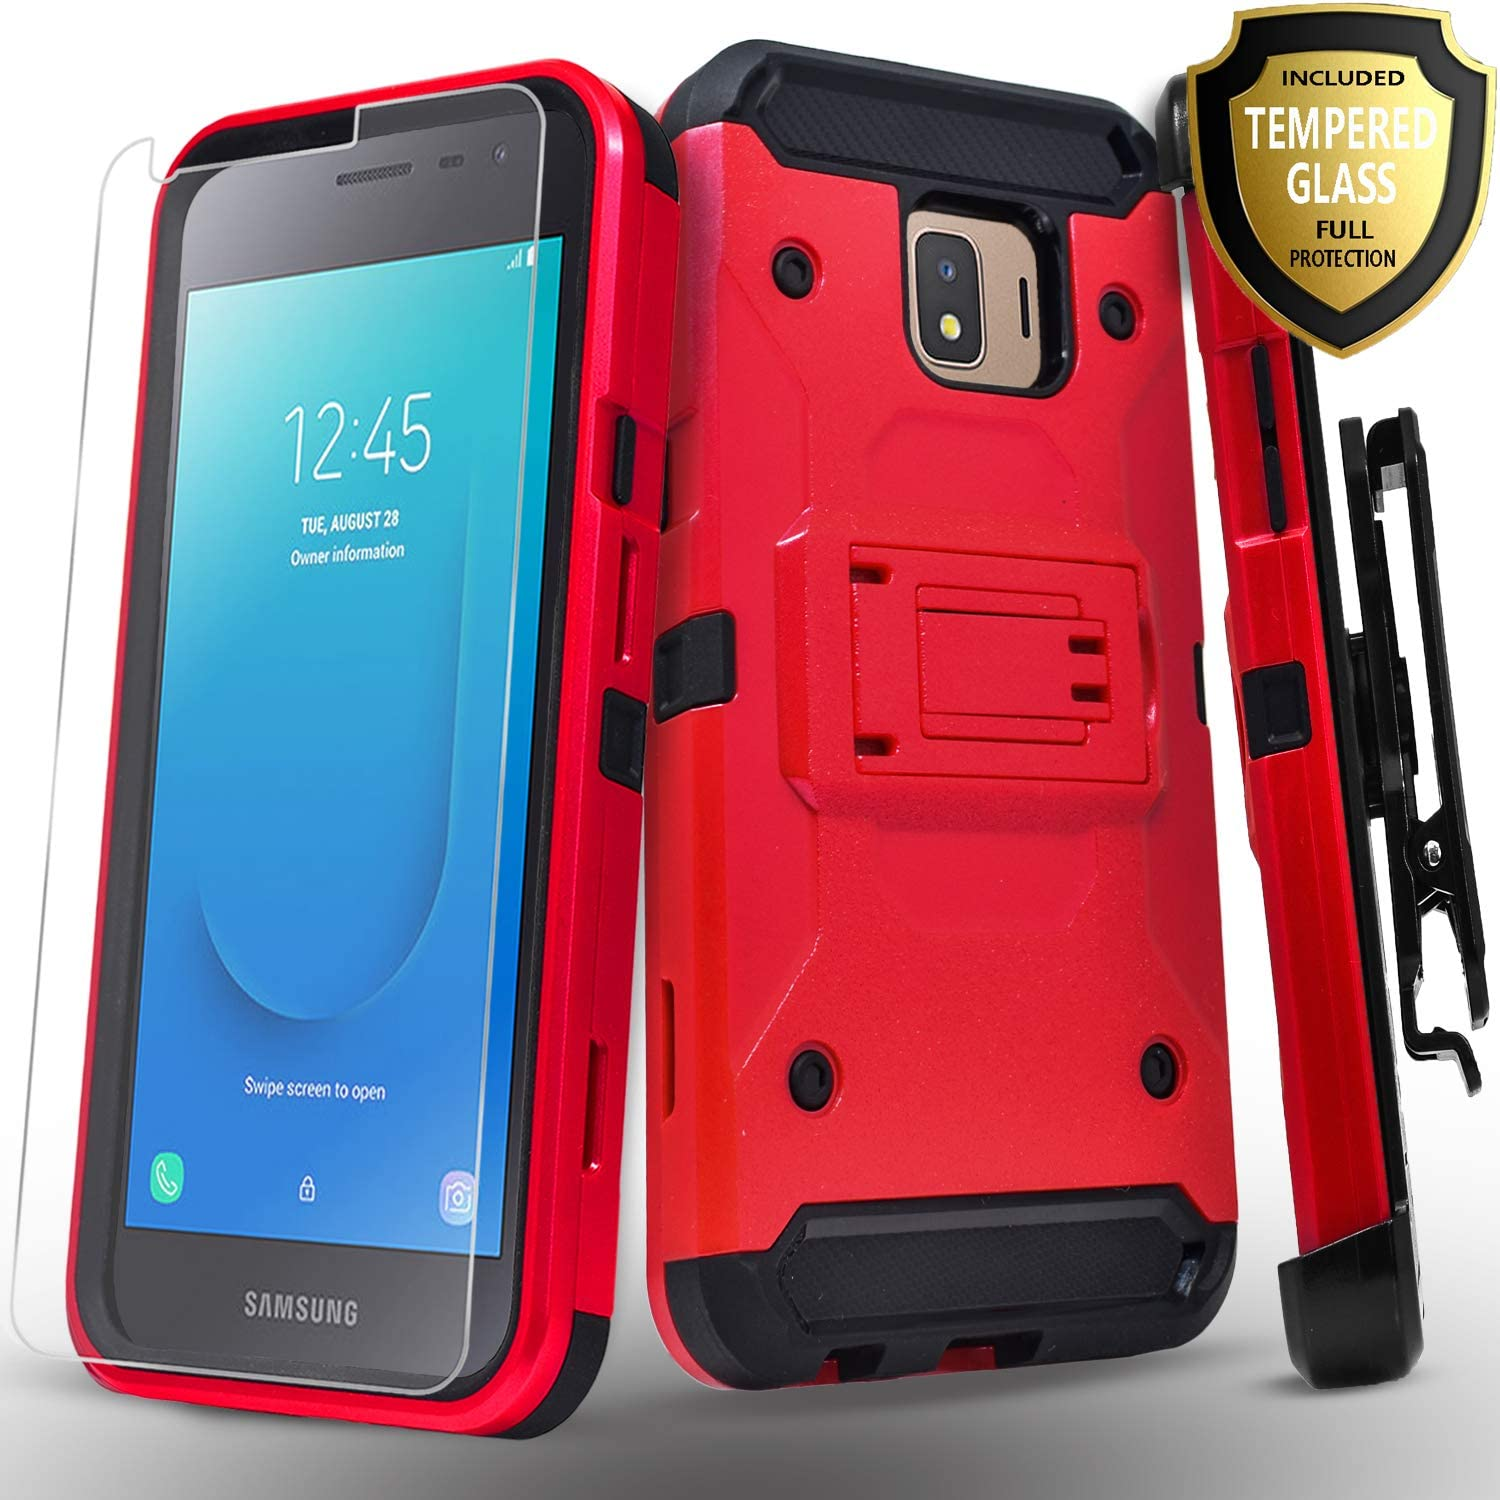 Amazon Com Starshop Full Cover Dual Layers Phone Case Compatible For Samsung Galaxy J2 Galaxy J2 Core J2 Pure J2 Dash With Tempered Glass Screen Protector Included And Kickstand And Locking Belt Clip Red